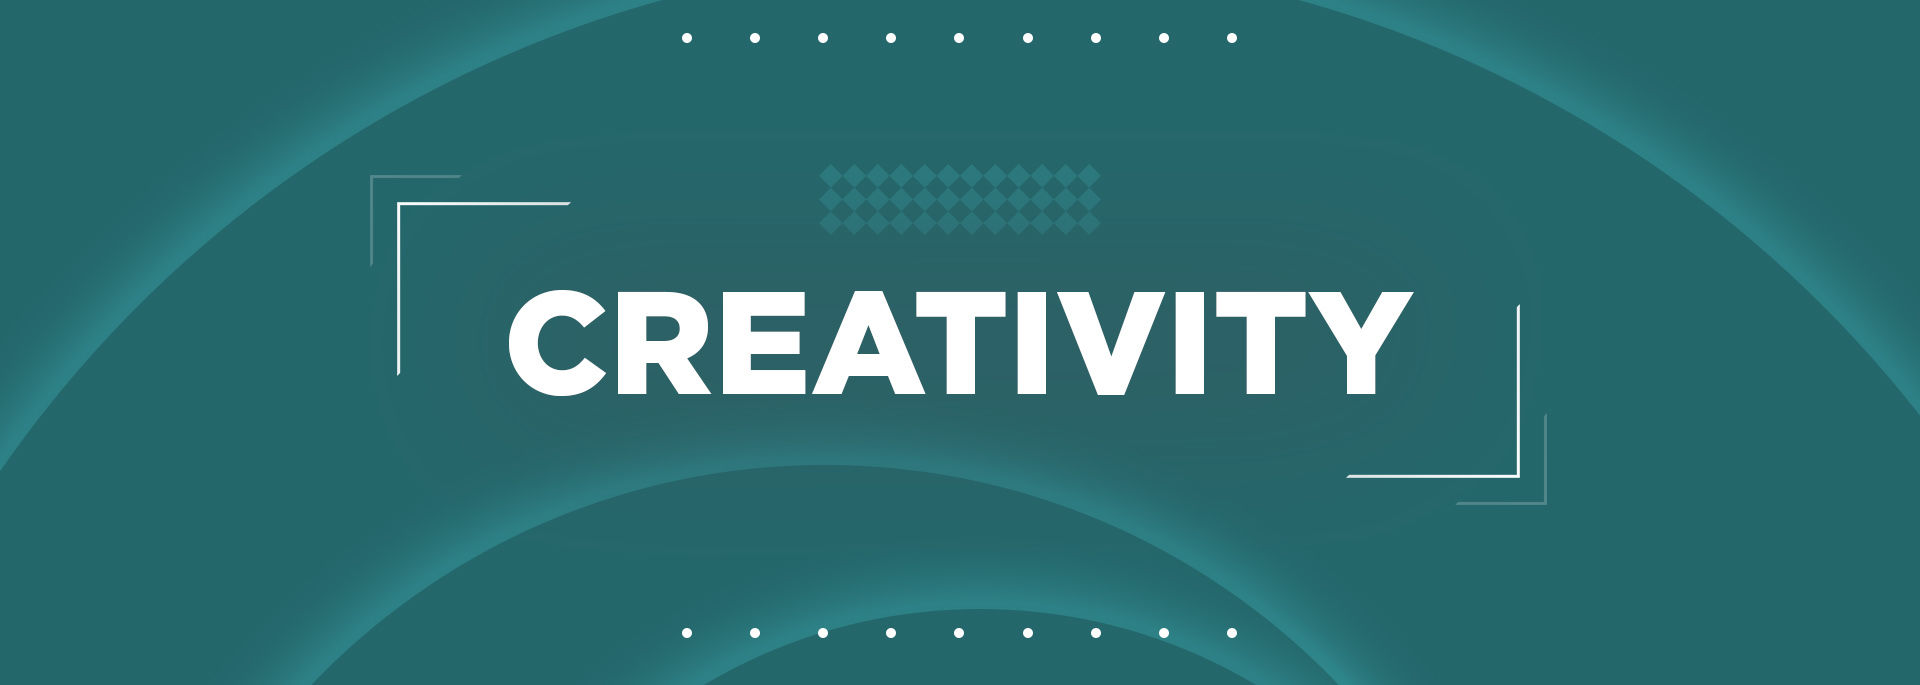 Creativity channel